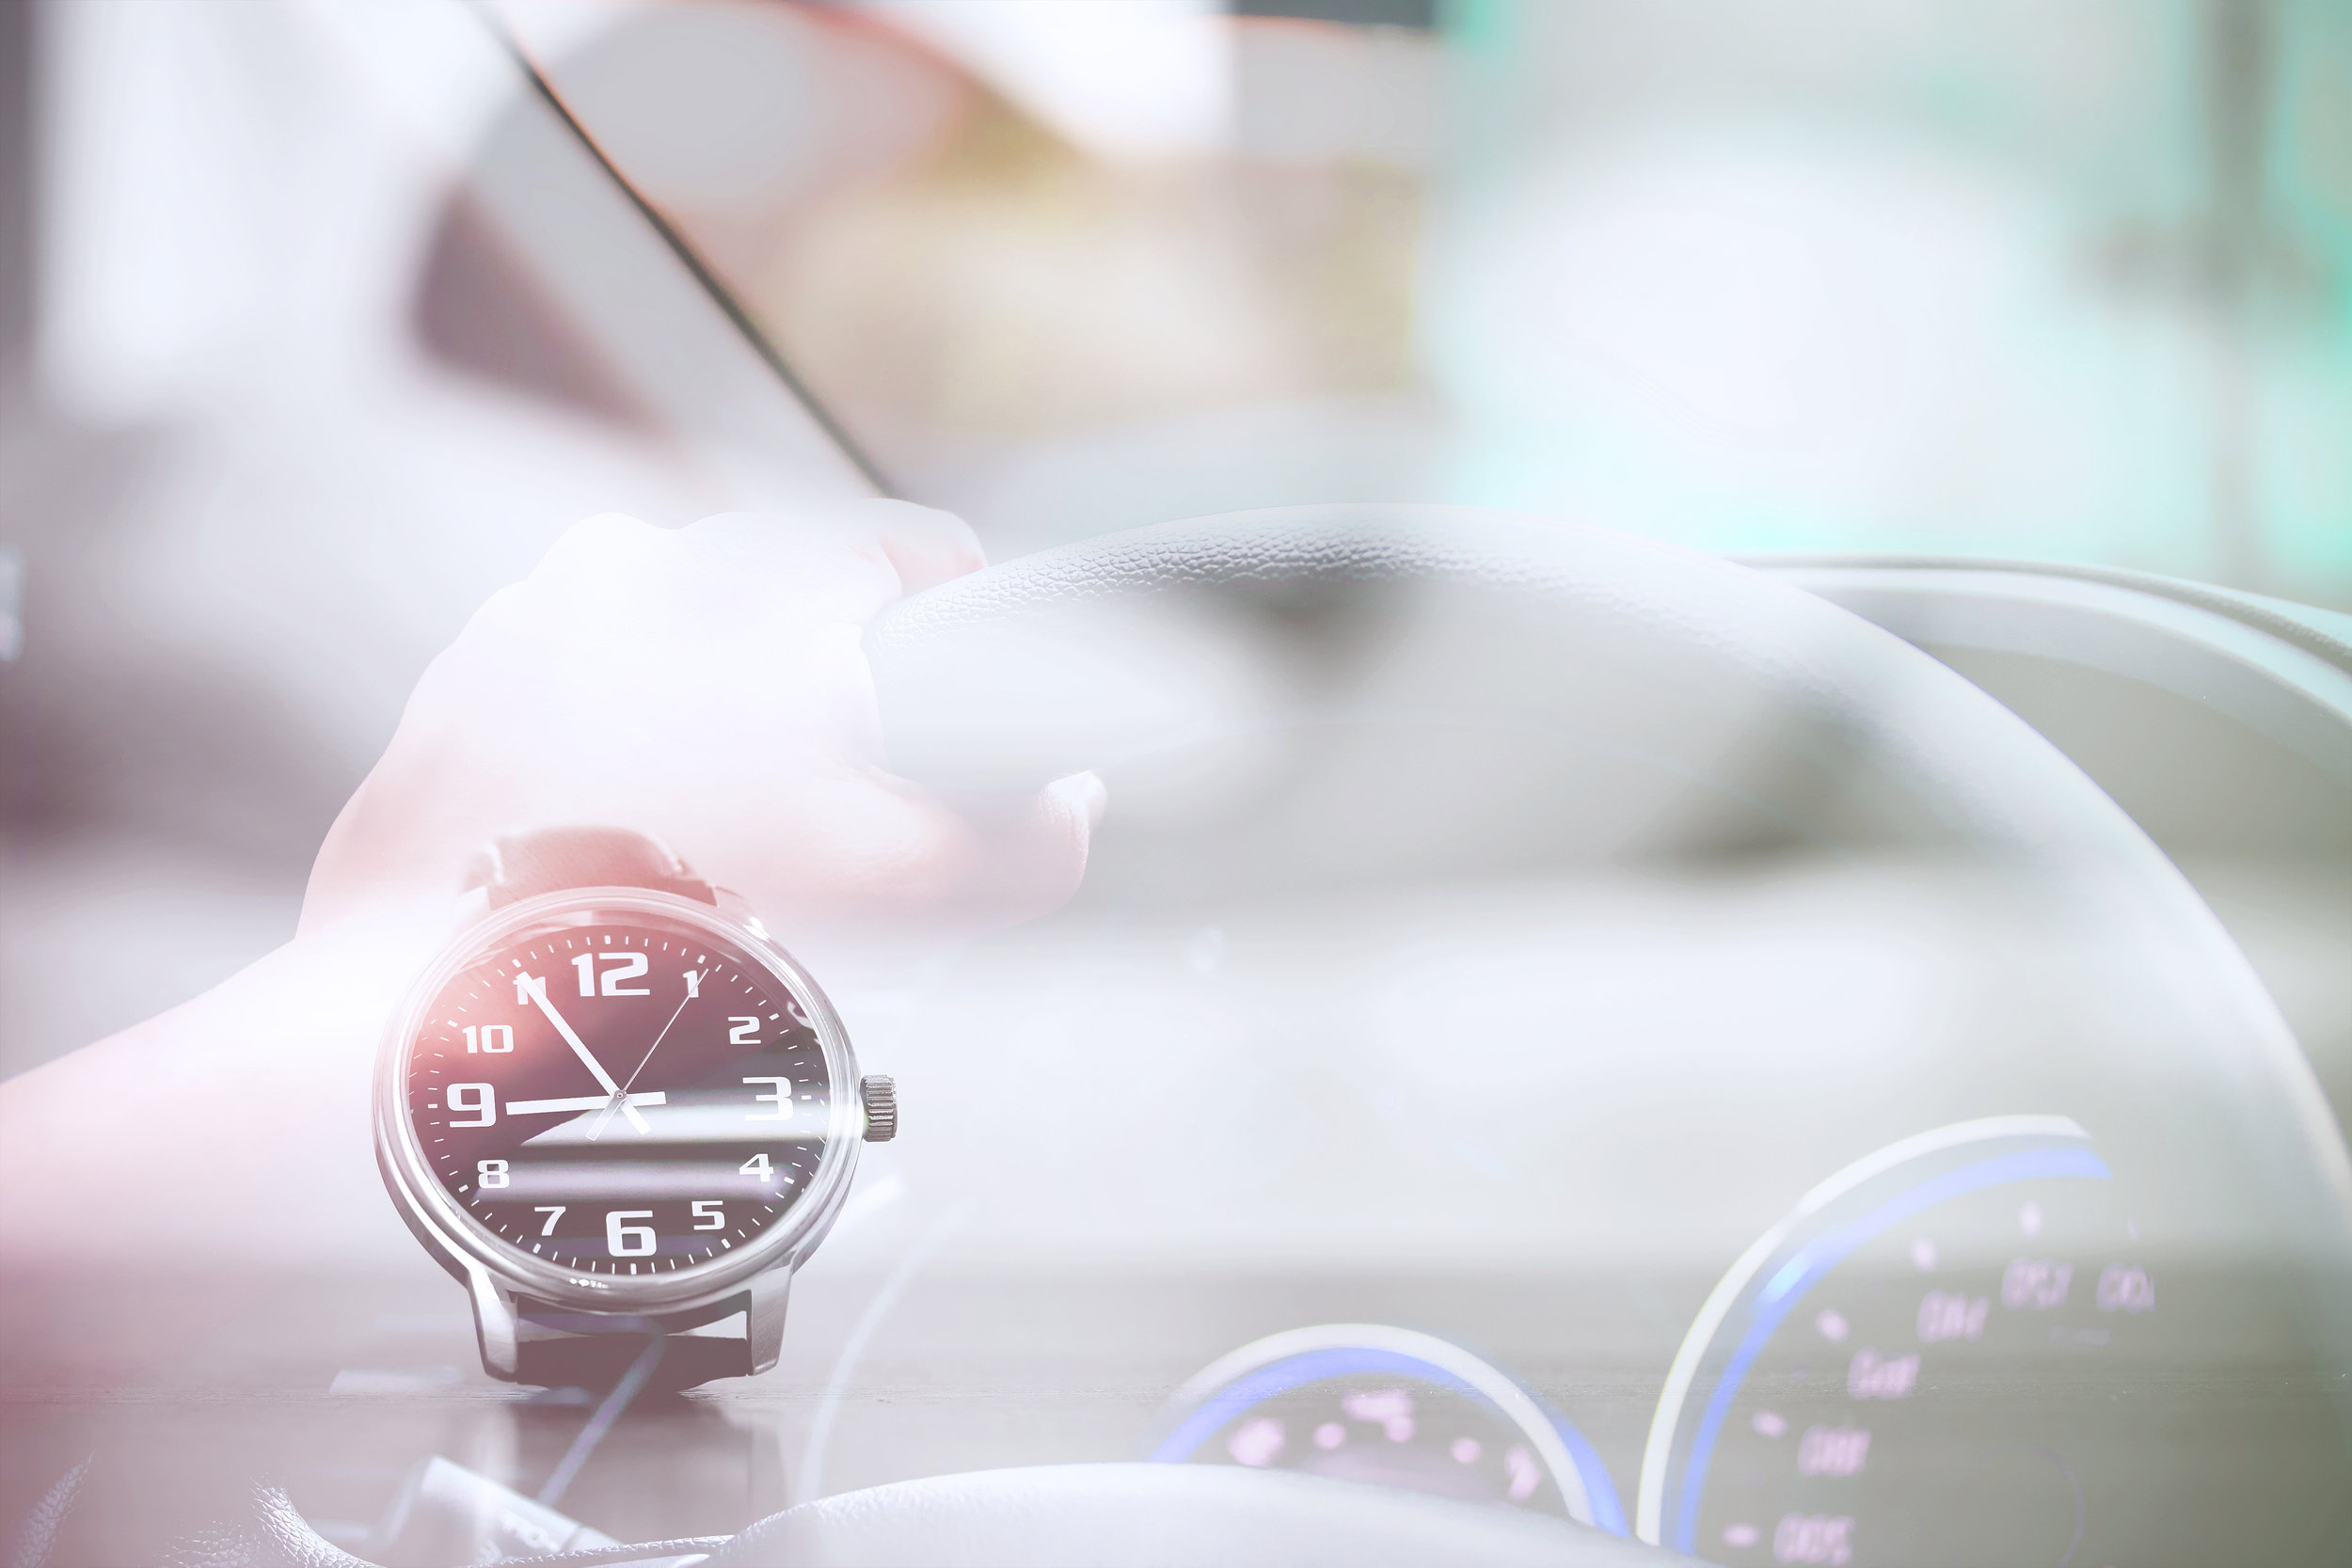 Discover When - In-Market Buyers are actively shopping, evaluating and Test driving vehicles in your market.